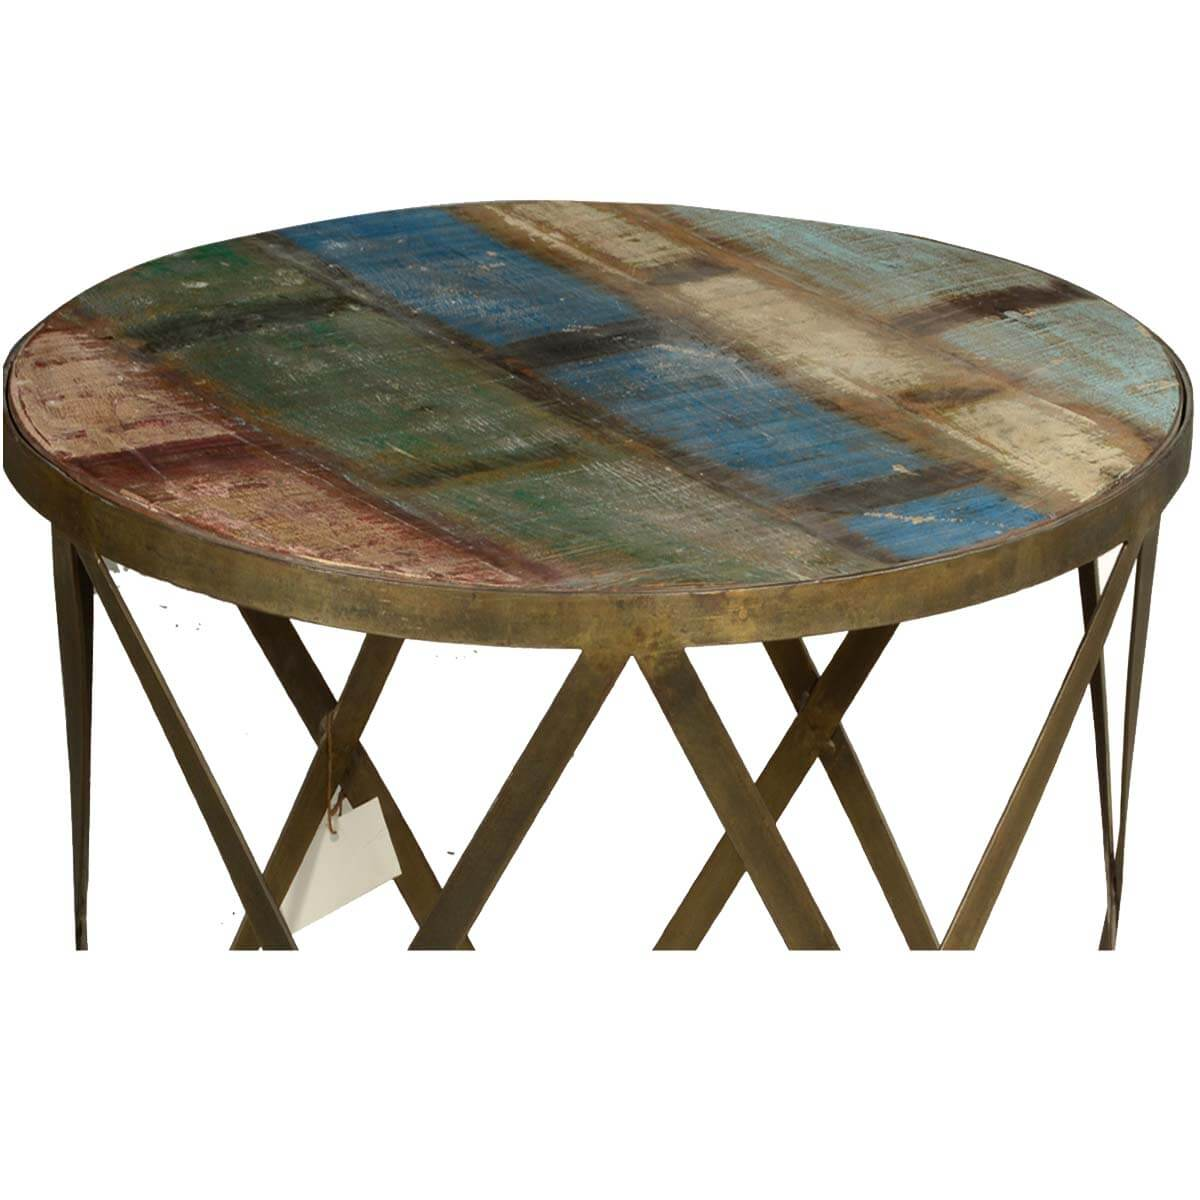 Retro Style Solid Wood And Iron Round Industrial Coffee Table